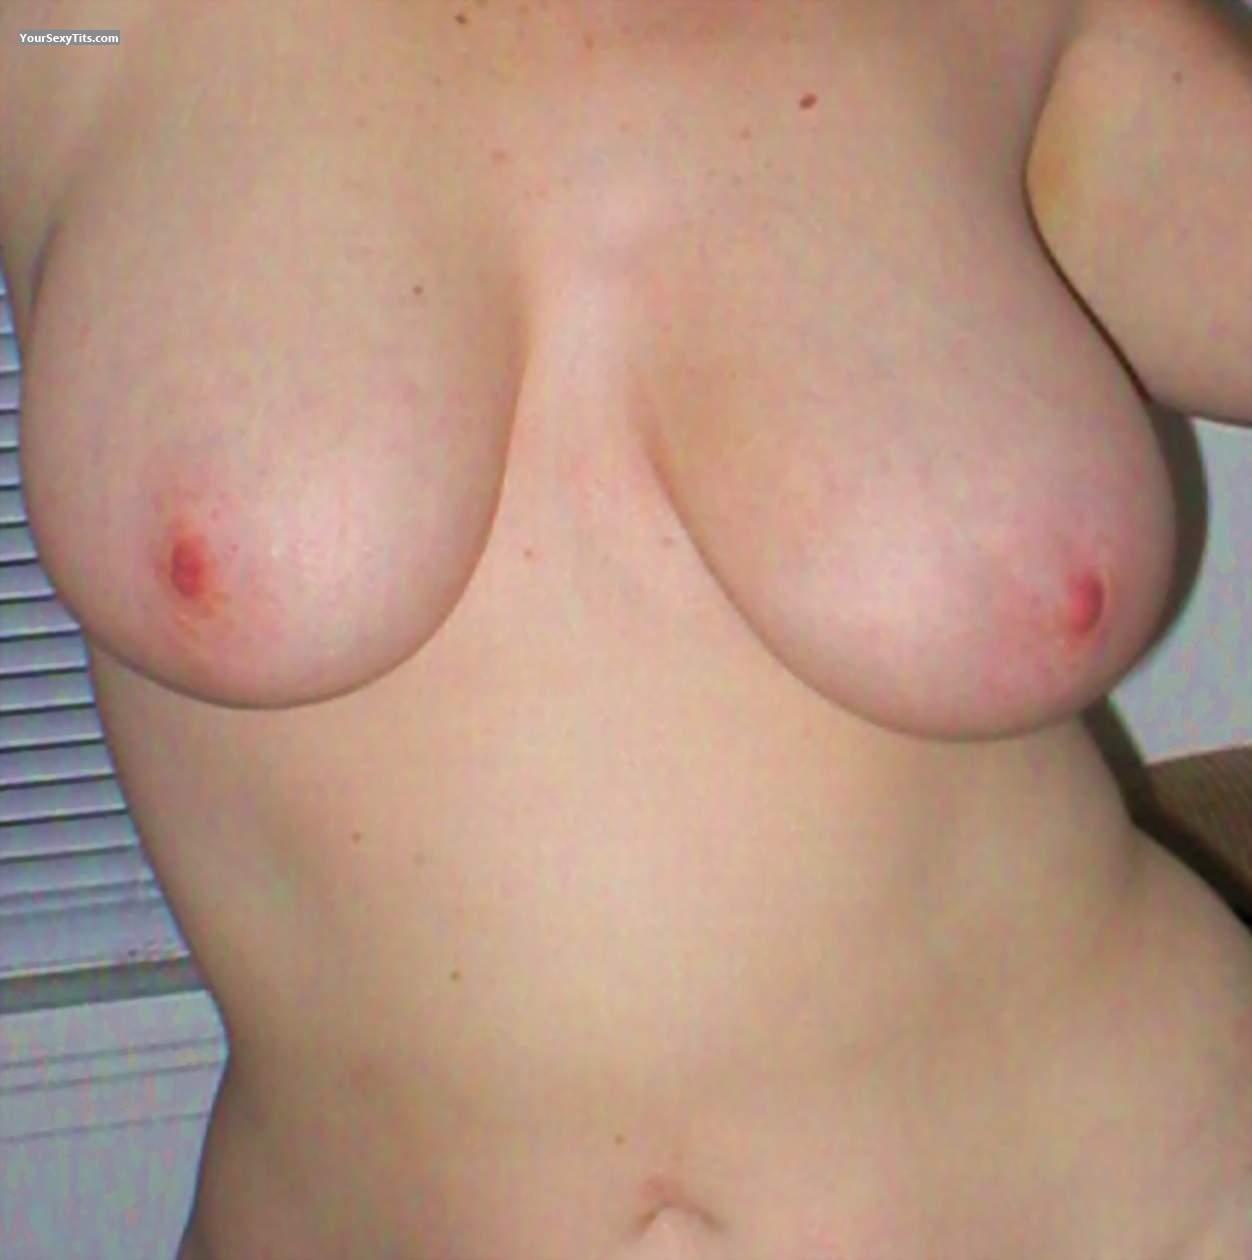 Tit Flash: Very Big Tits - Vixen from United States